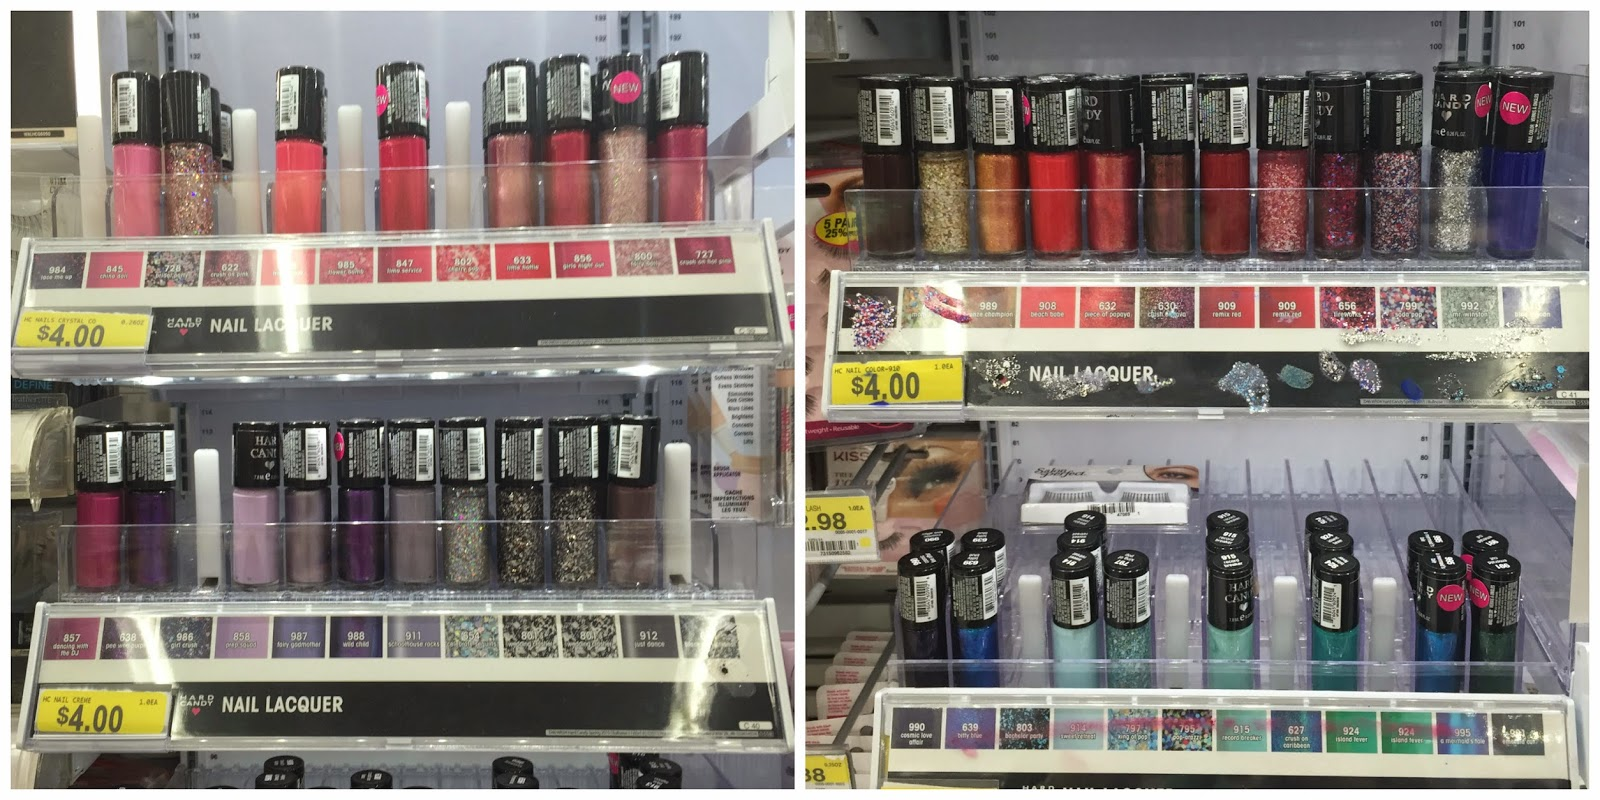 Hard Candy Spring 2015 Nail Polish Display